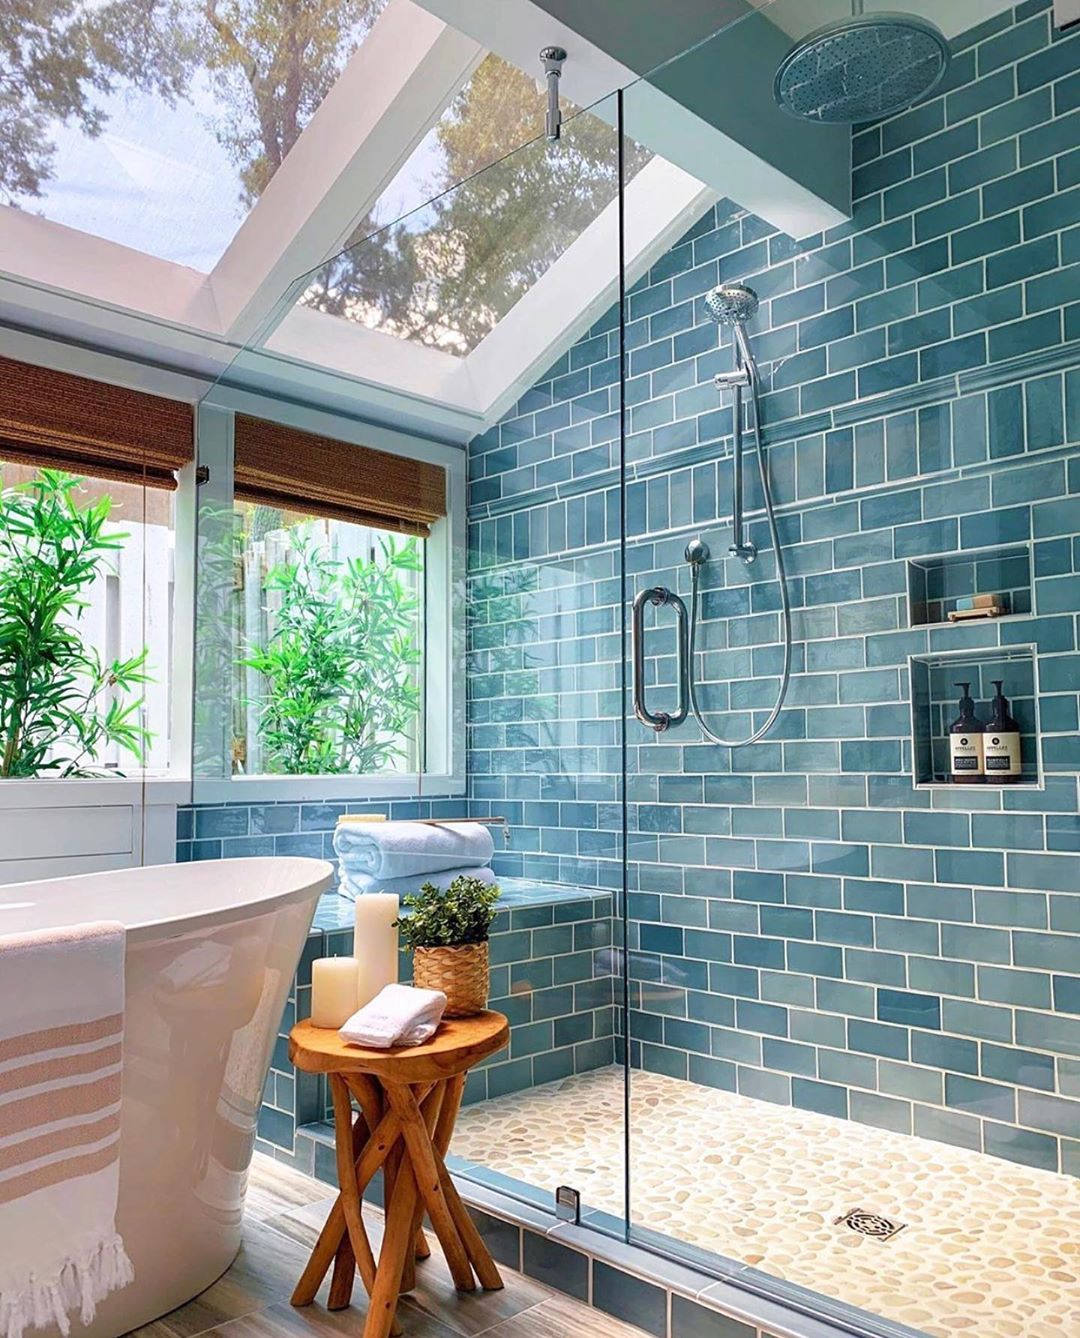 Photo of 35 Simple And Beautiful Small Bathroom Ideas 2019 – Page 37 of 37 – My Blog